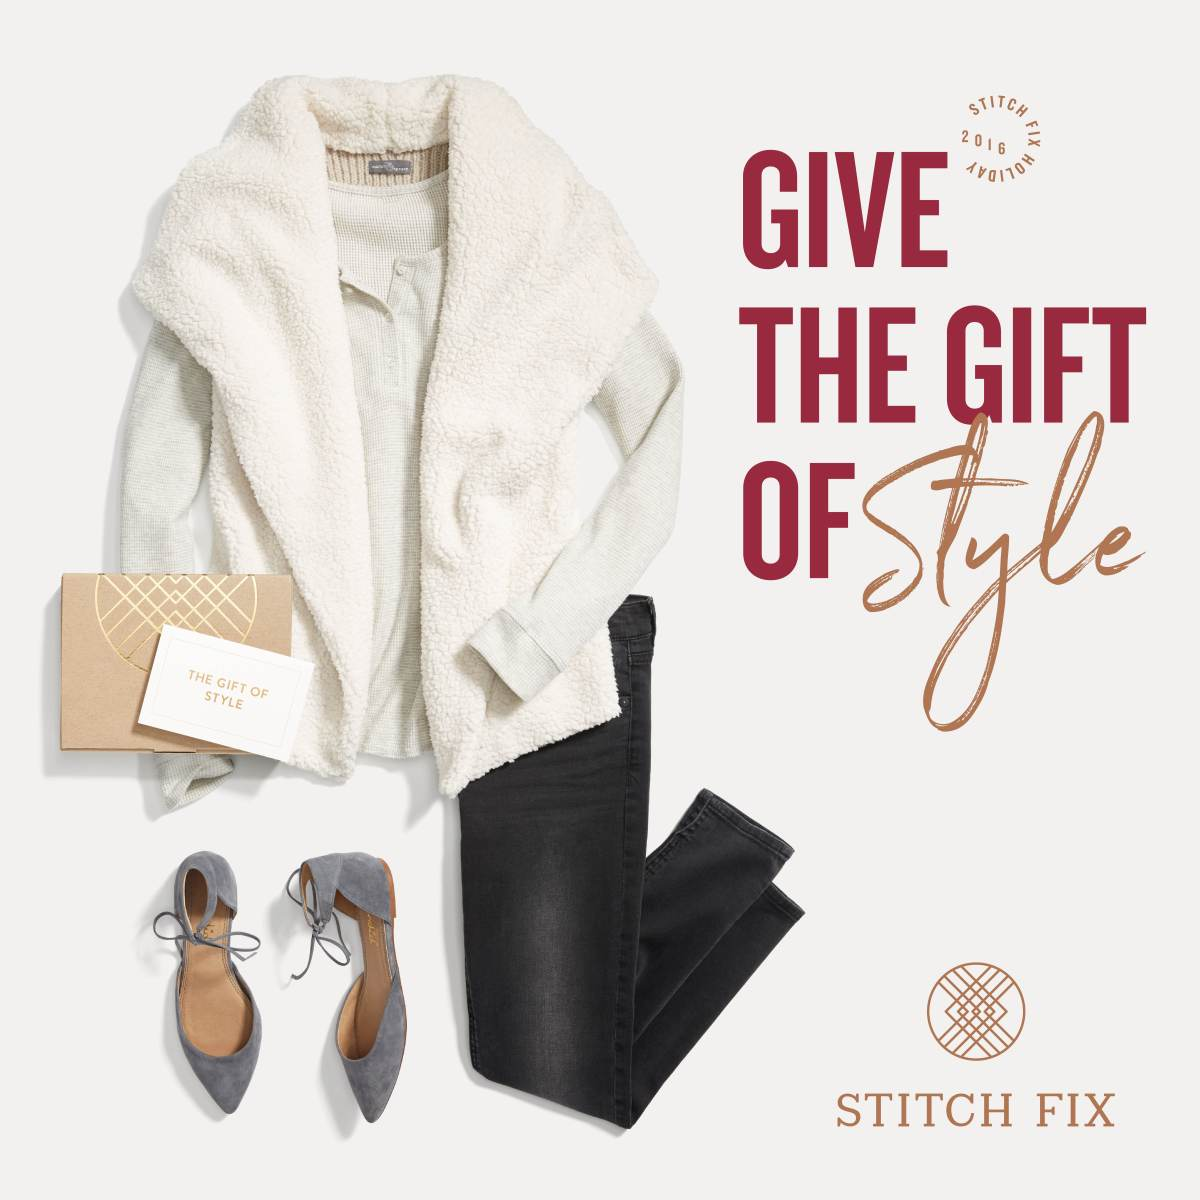 stitch-fix-gift-card-holiday-gift-guide1-1